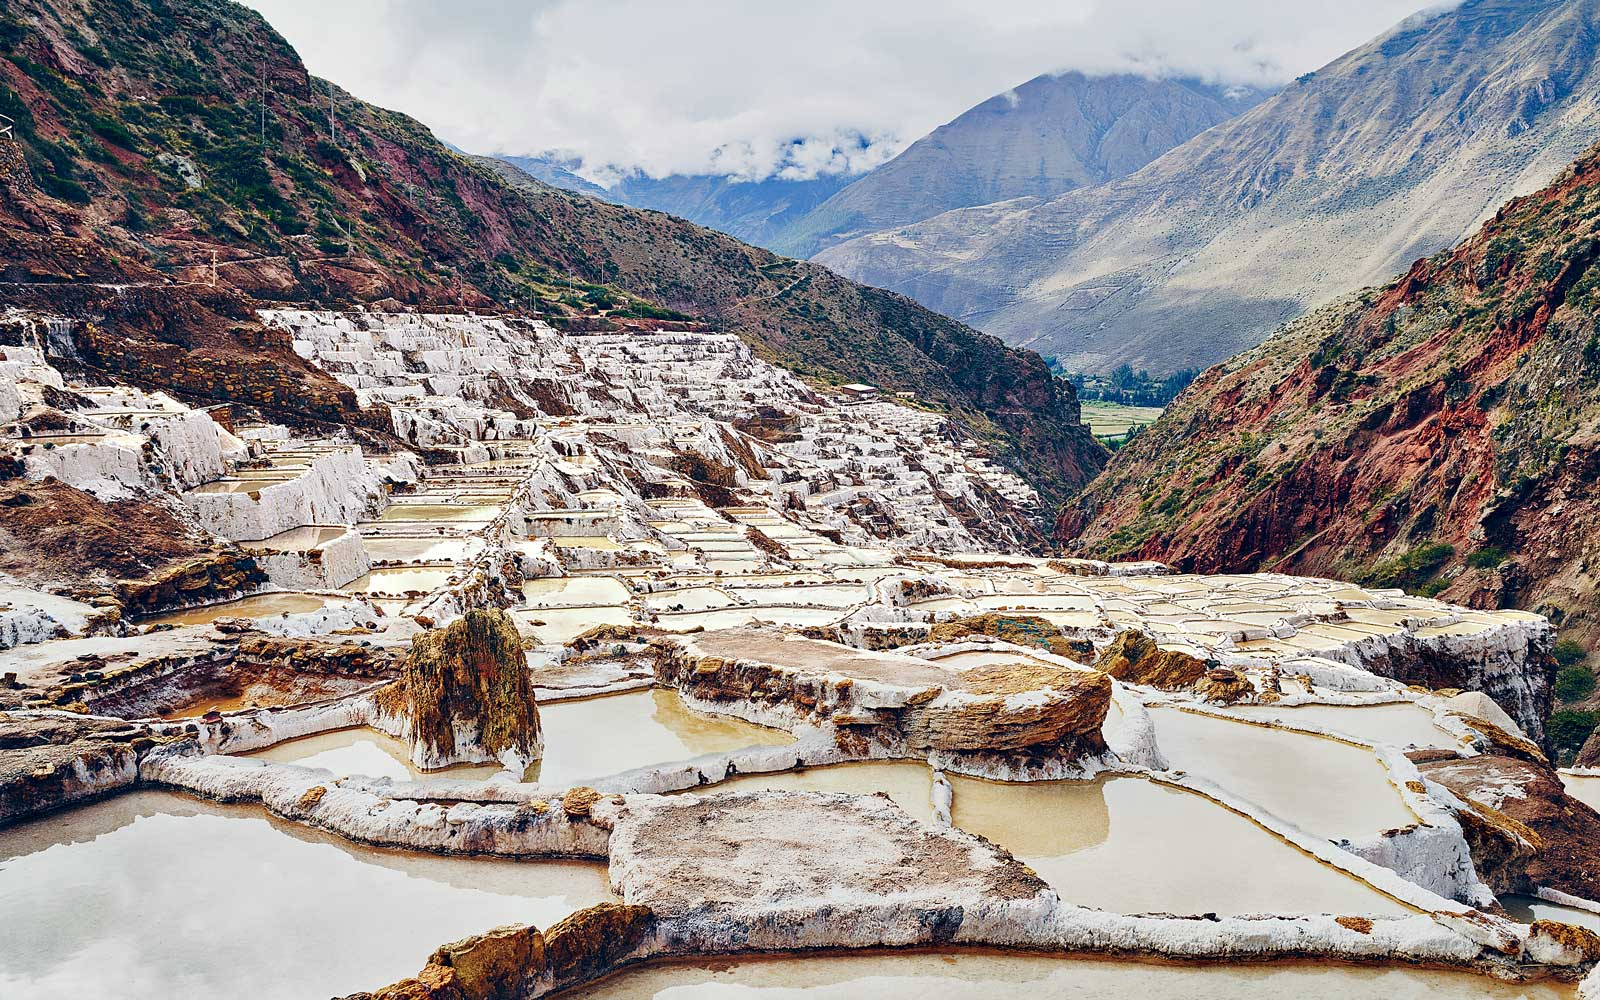 Maras salt works in Peru